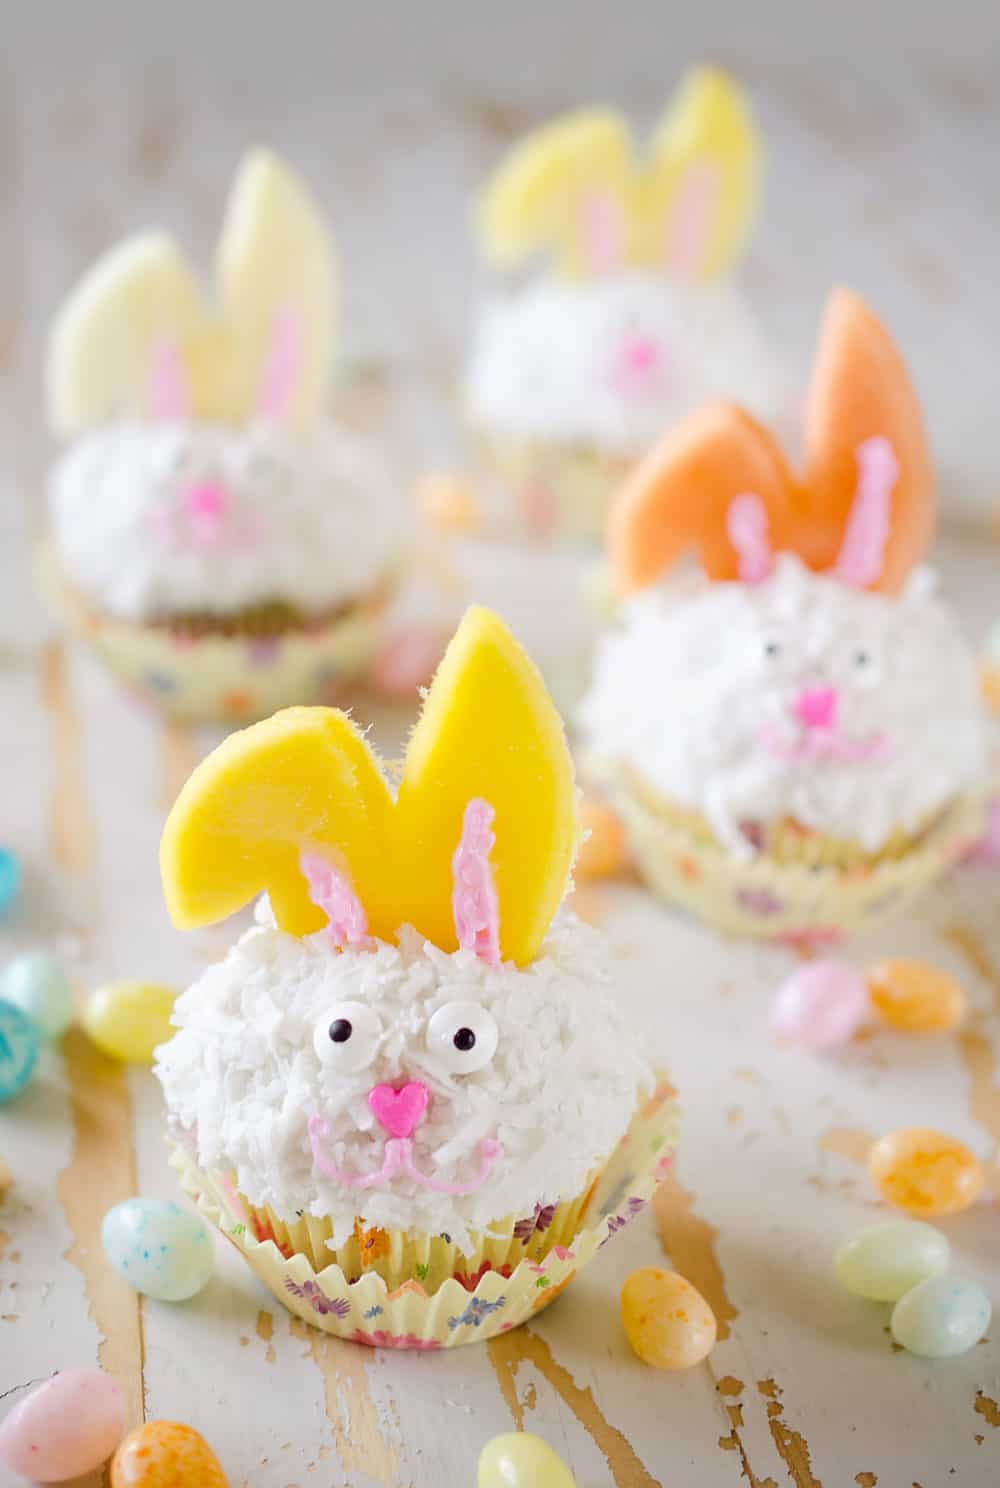 Light Coconut Cream Easter Bunny Cupcakes are a fun and healthy spring dessert recipe. Lightened up cupcakes are topped with bunny ears made from fruit, for a holiday treat kids and adults will LOVE! #Easter #Cupcakes #Light #Healthy